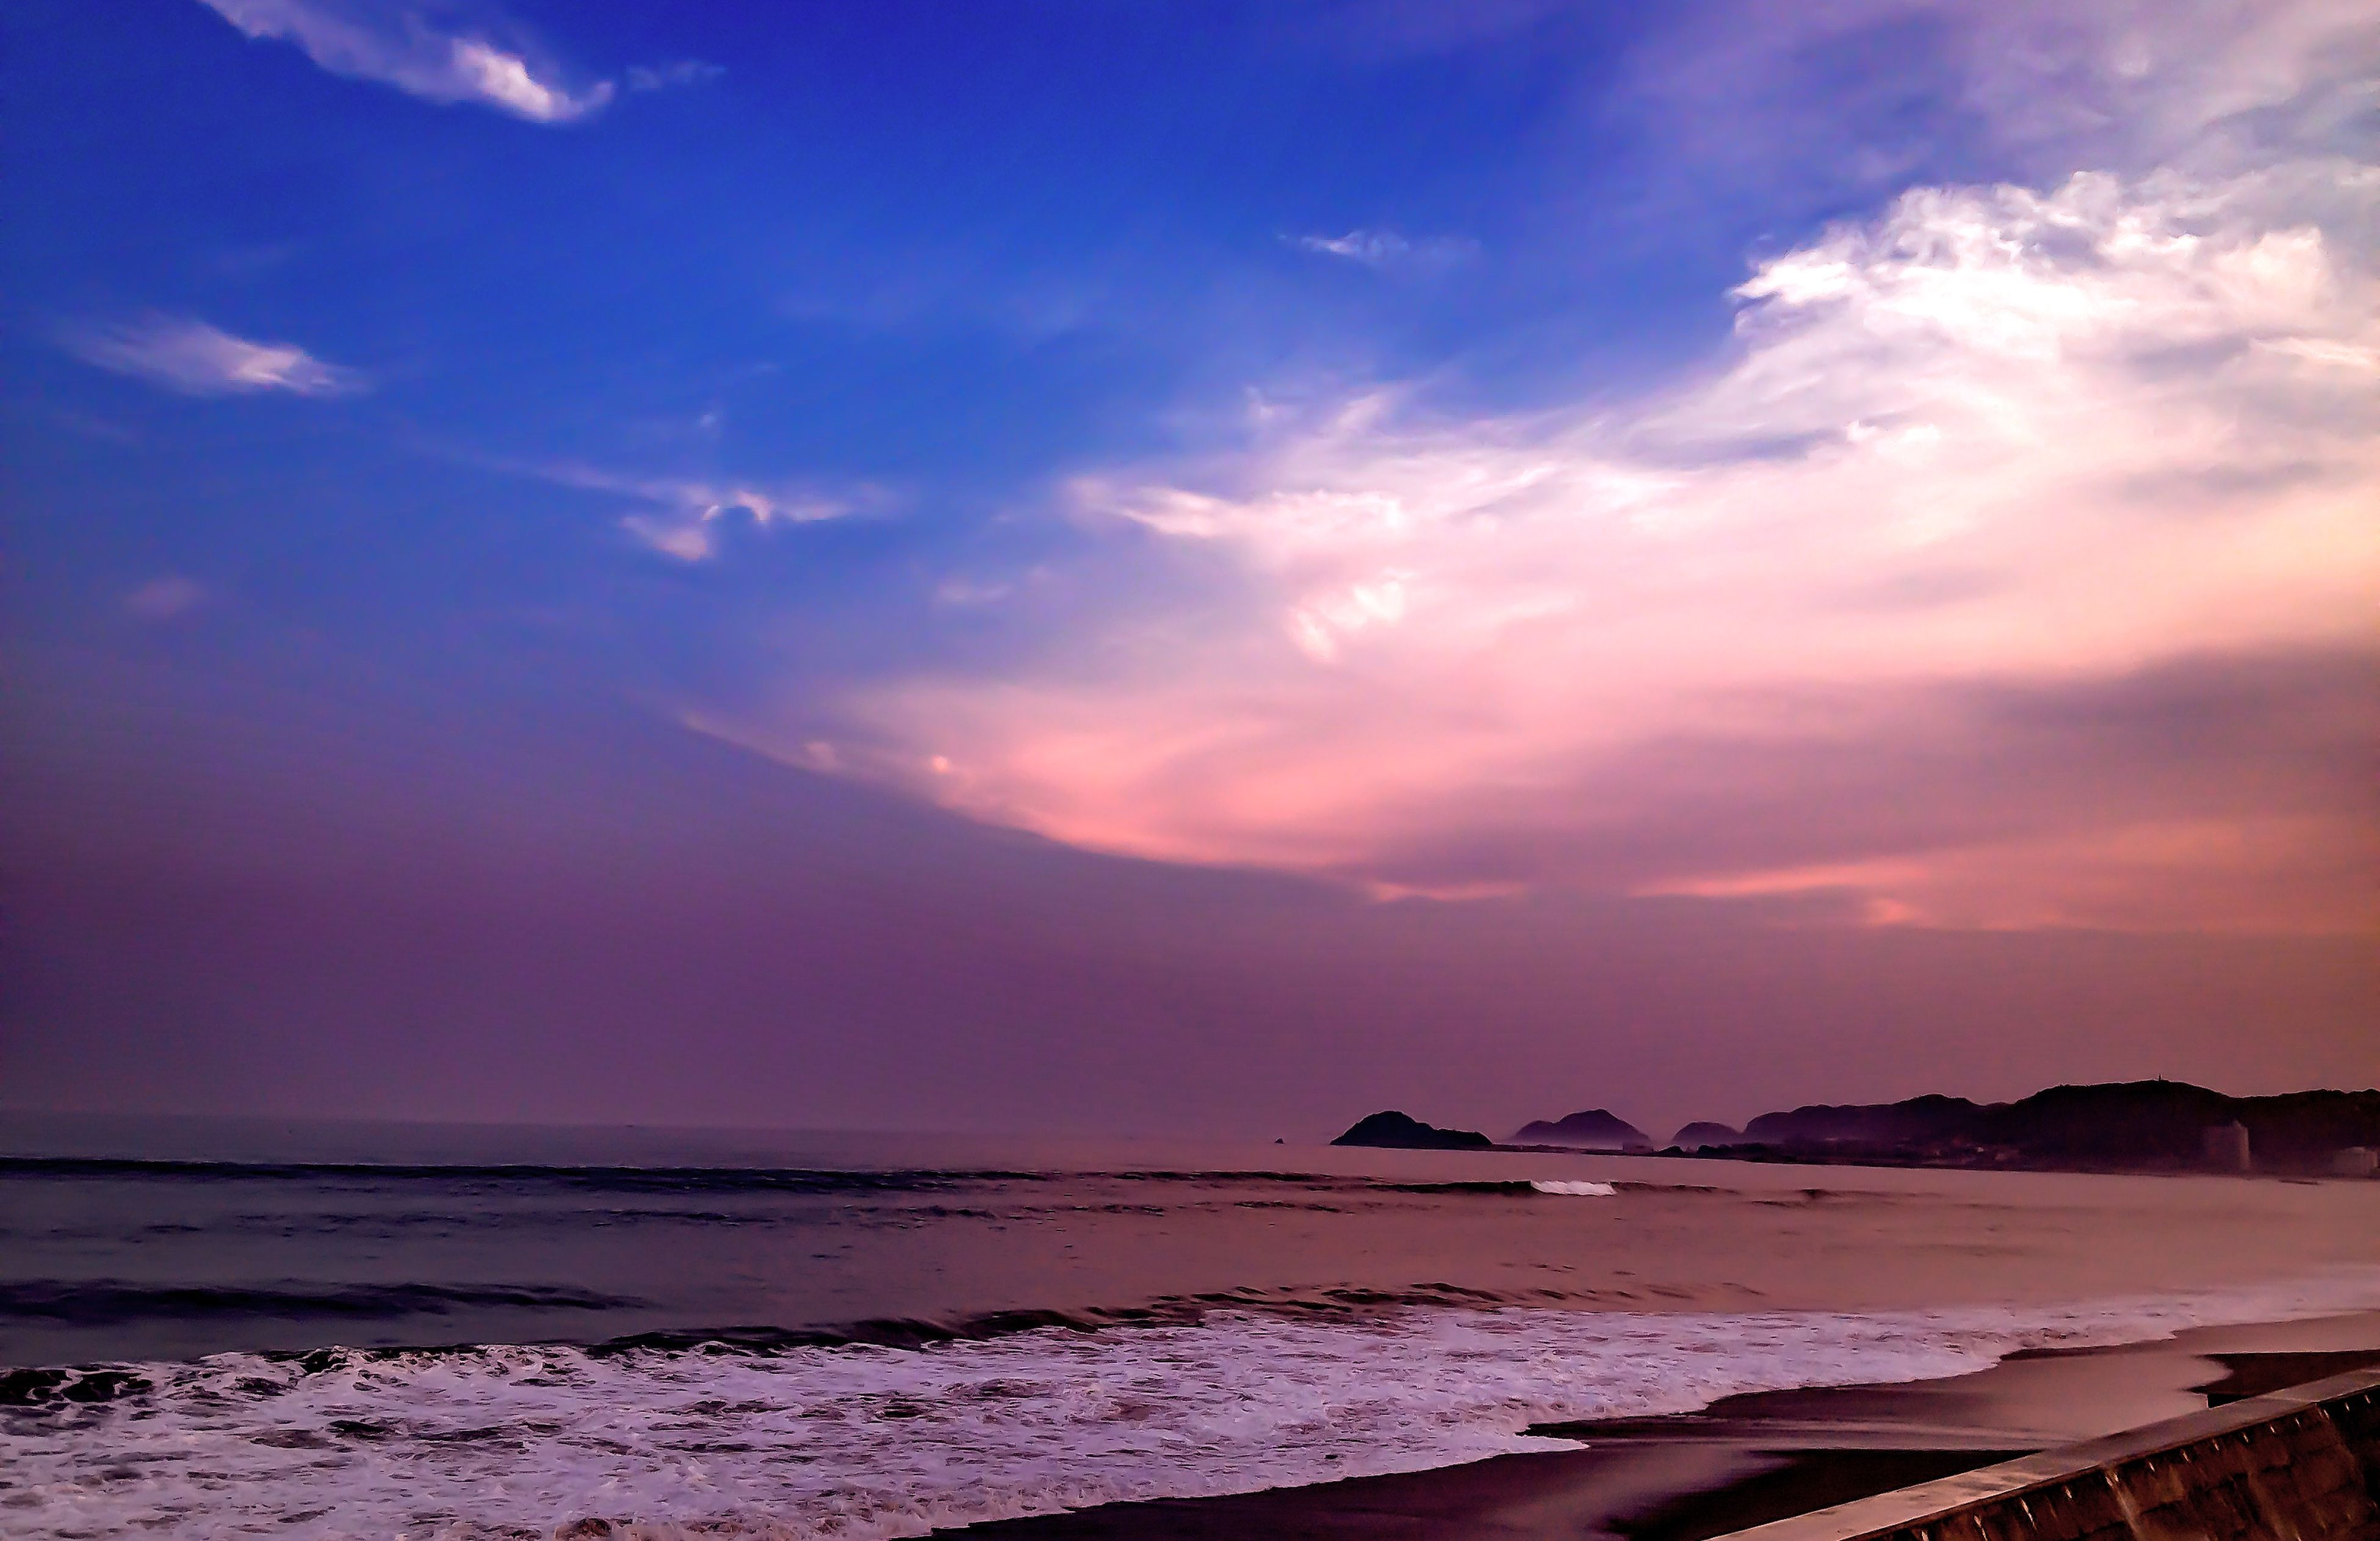 sea, beach, water, shore, sky, scenics, sand, tranquil scene, tranquility, horizon over water, beauty in nature, sunset, nature, cloud - sky, idyllic, coastline, wave, cloud, outdoors, cloudy